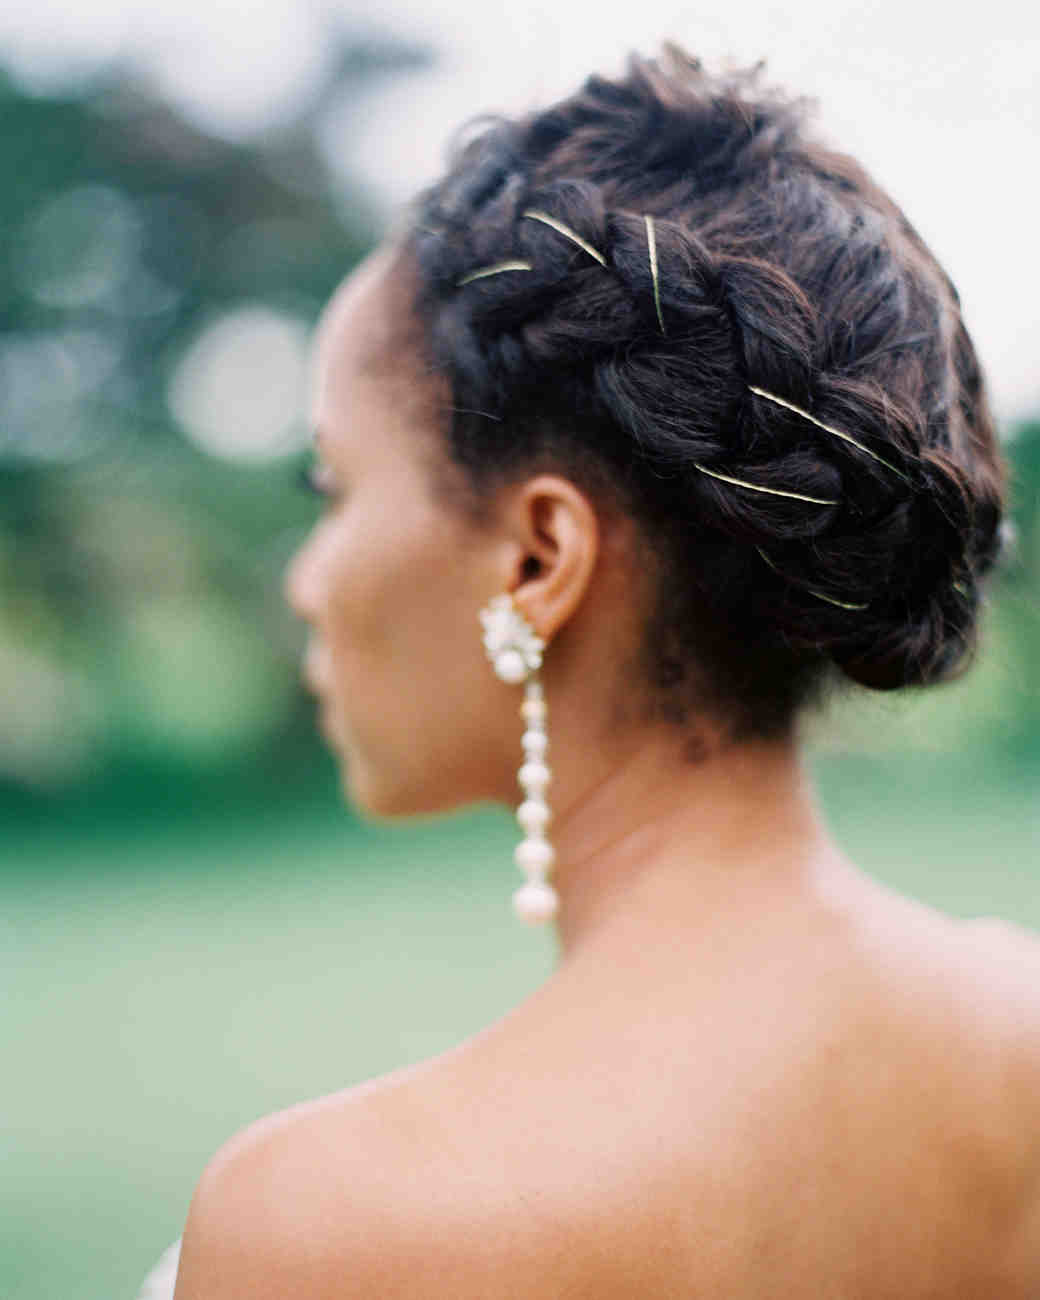 Wedding Hairstyles Bride: 25 Braided Wedding Hairstyles We Love